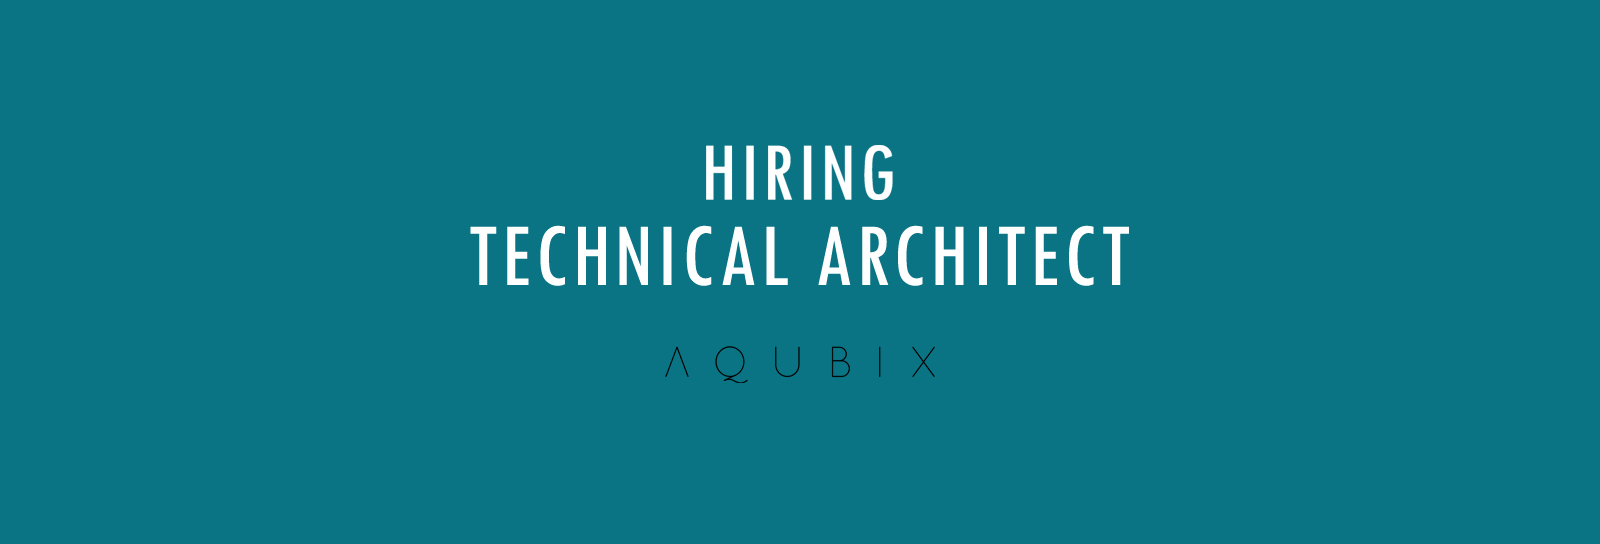 HIRING TECHNICAL ARCHITECT IT Consultancy Software